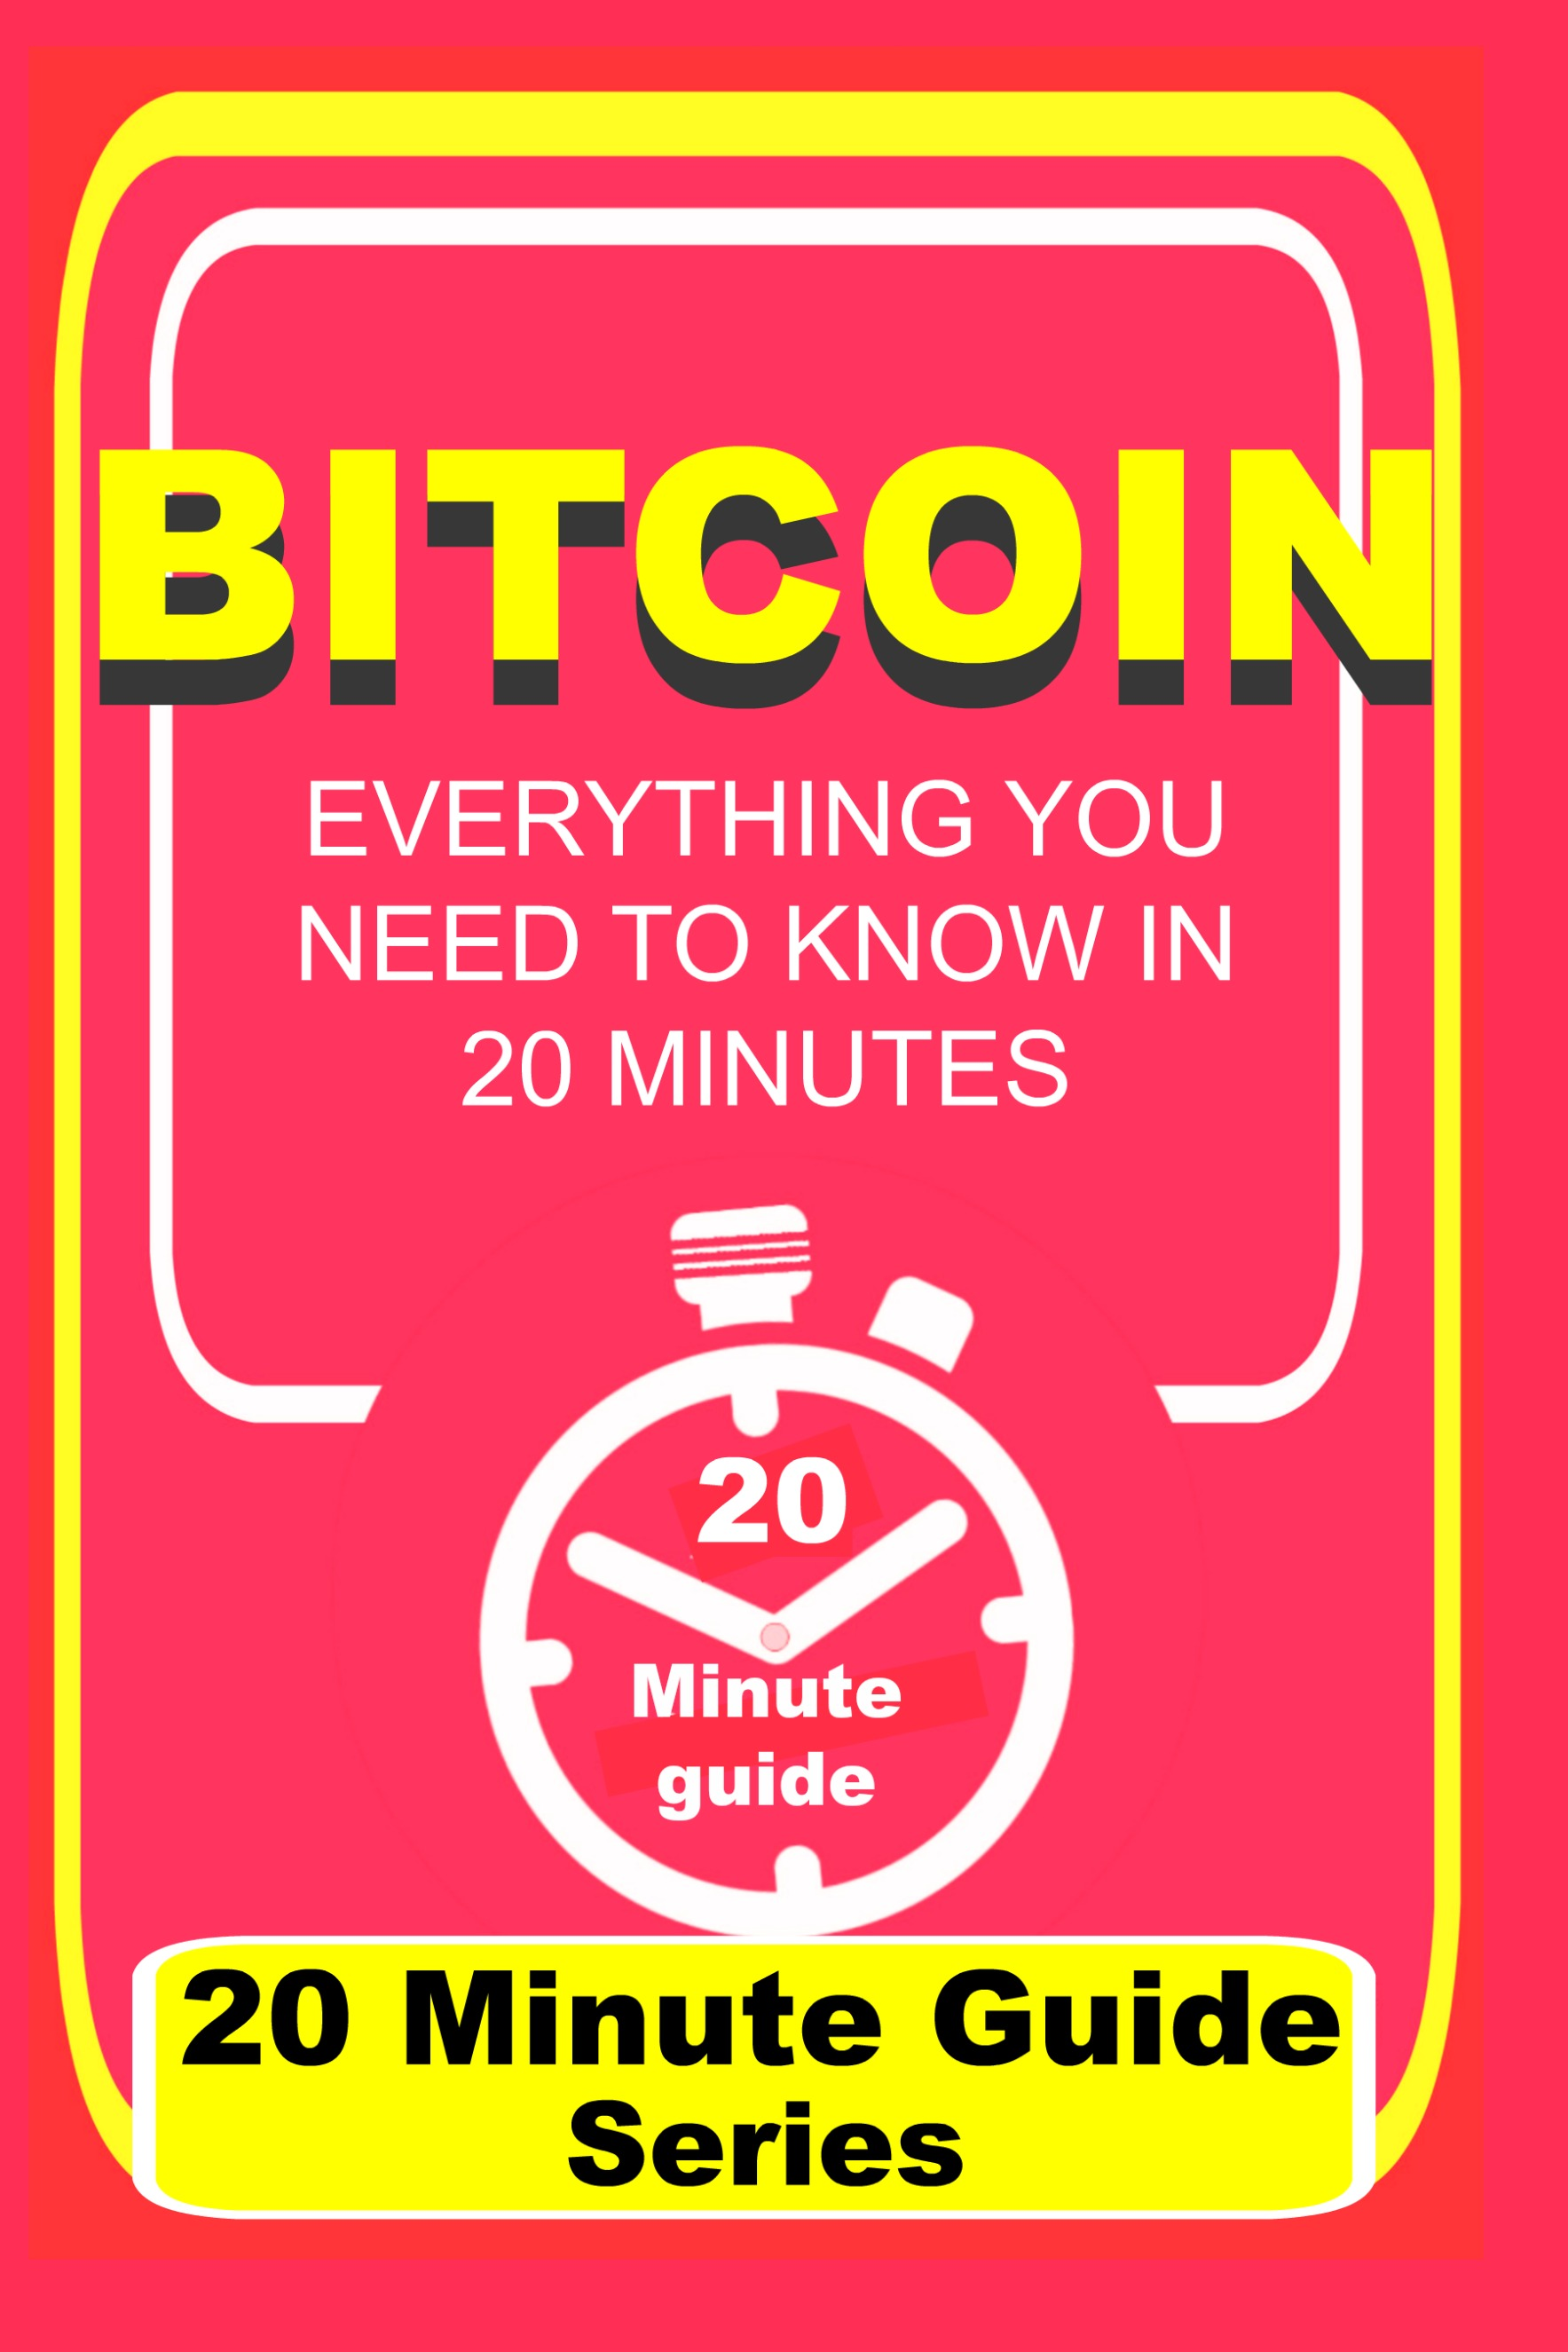 Purchase on Amazon book - Bitcoin 20 Minute Guide